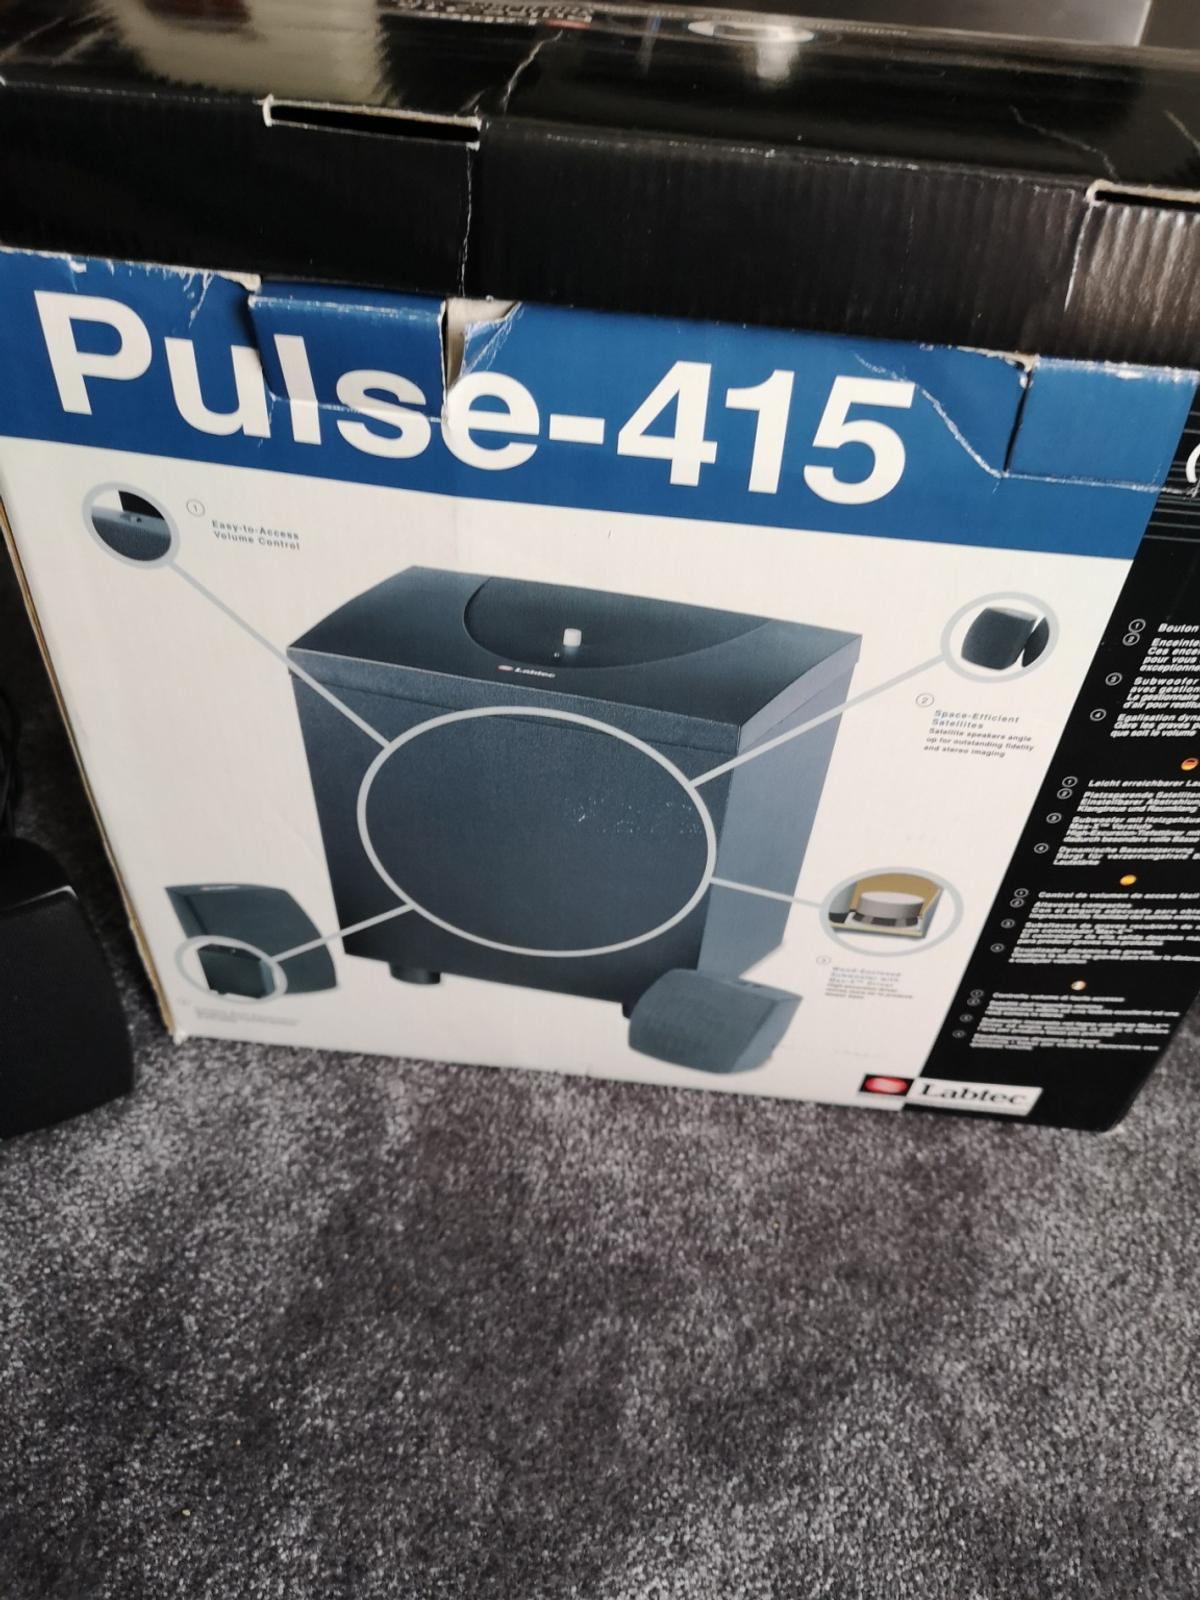 labtec speakers and sub woofer pulse 20 in WA20 Widnes für £ 20,20 ...